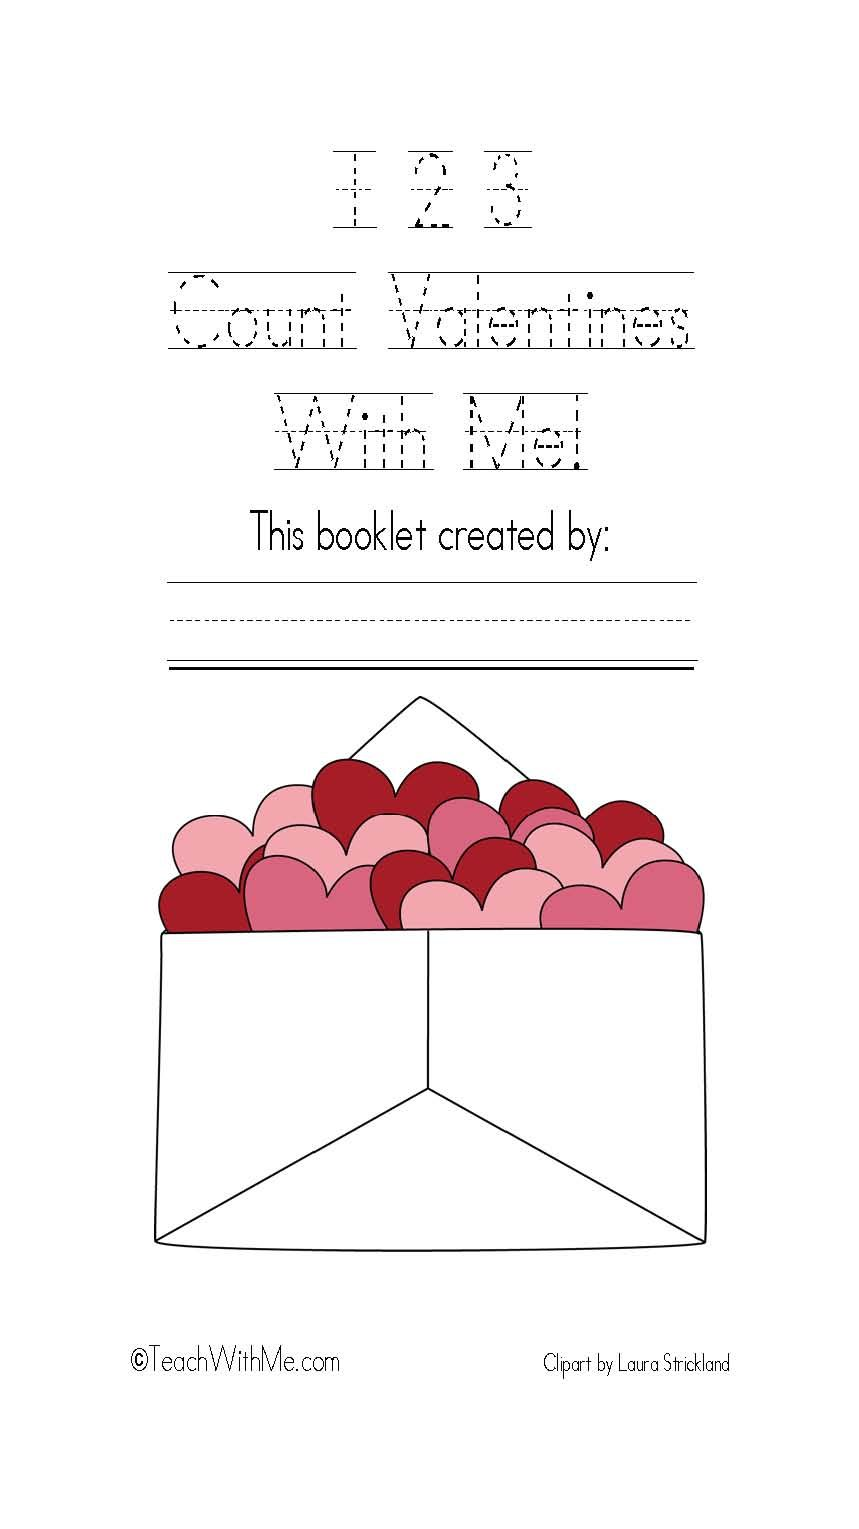 Classroom Freebies: 123 Count Valentines With Me Easy Reader Math Booklet